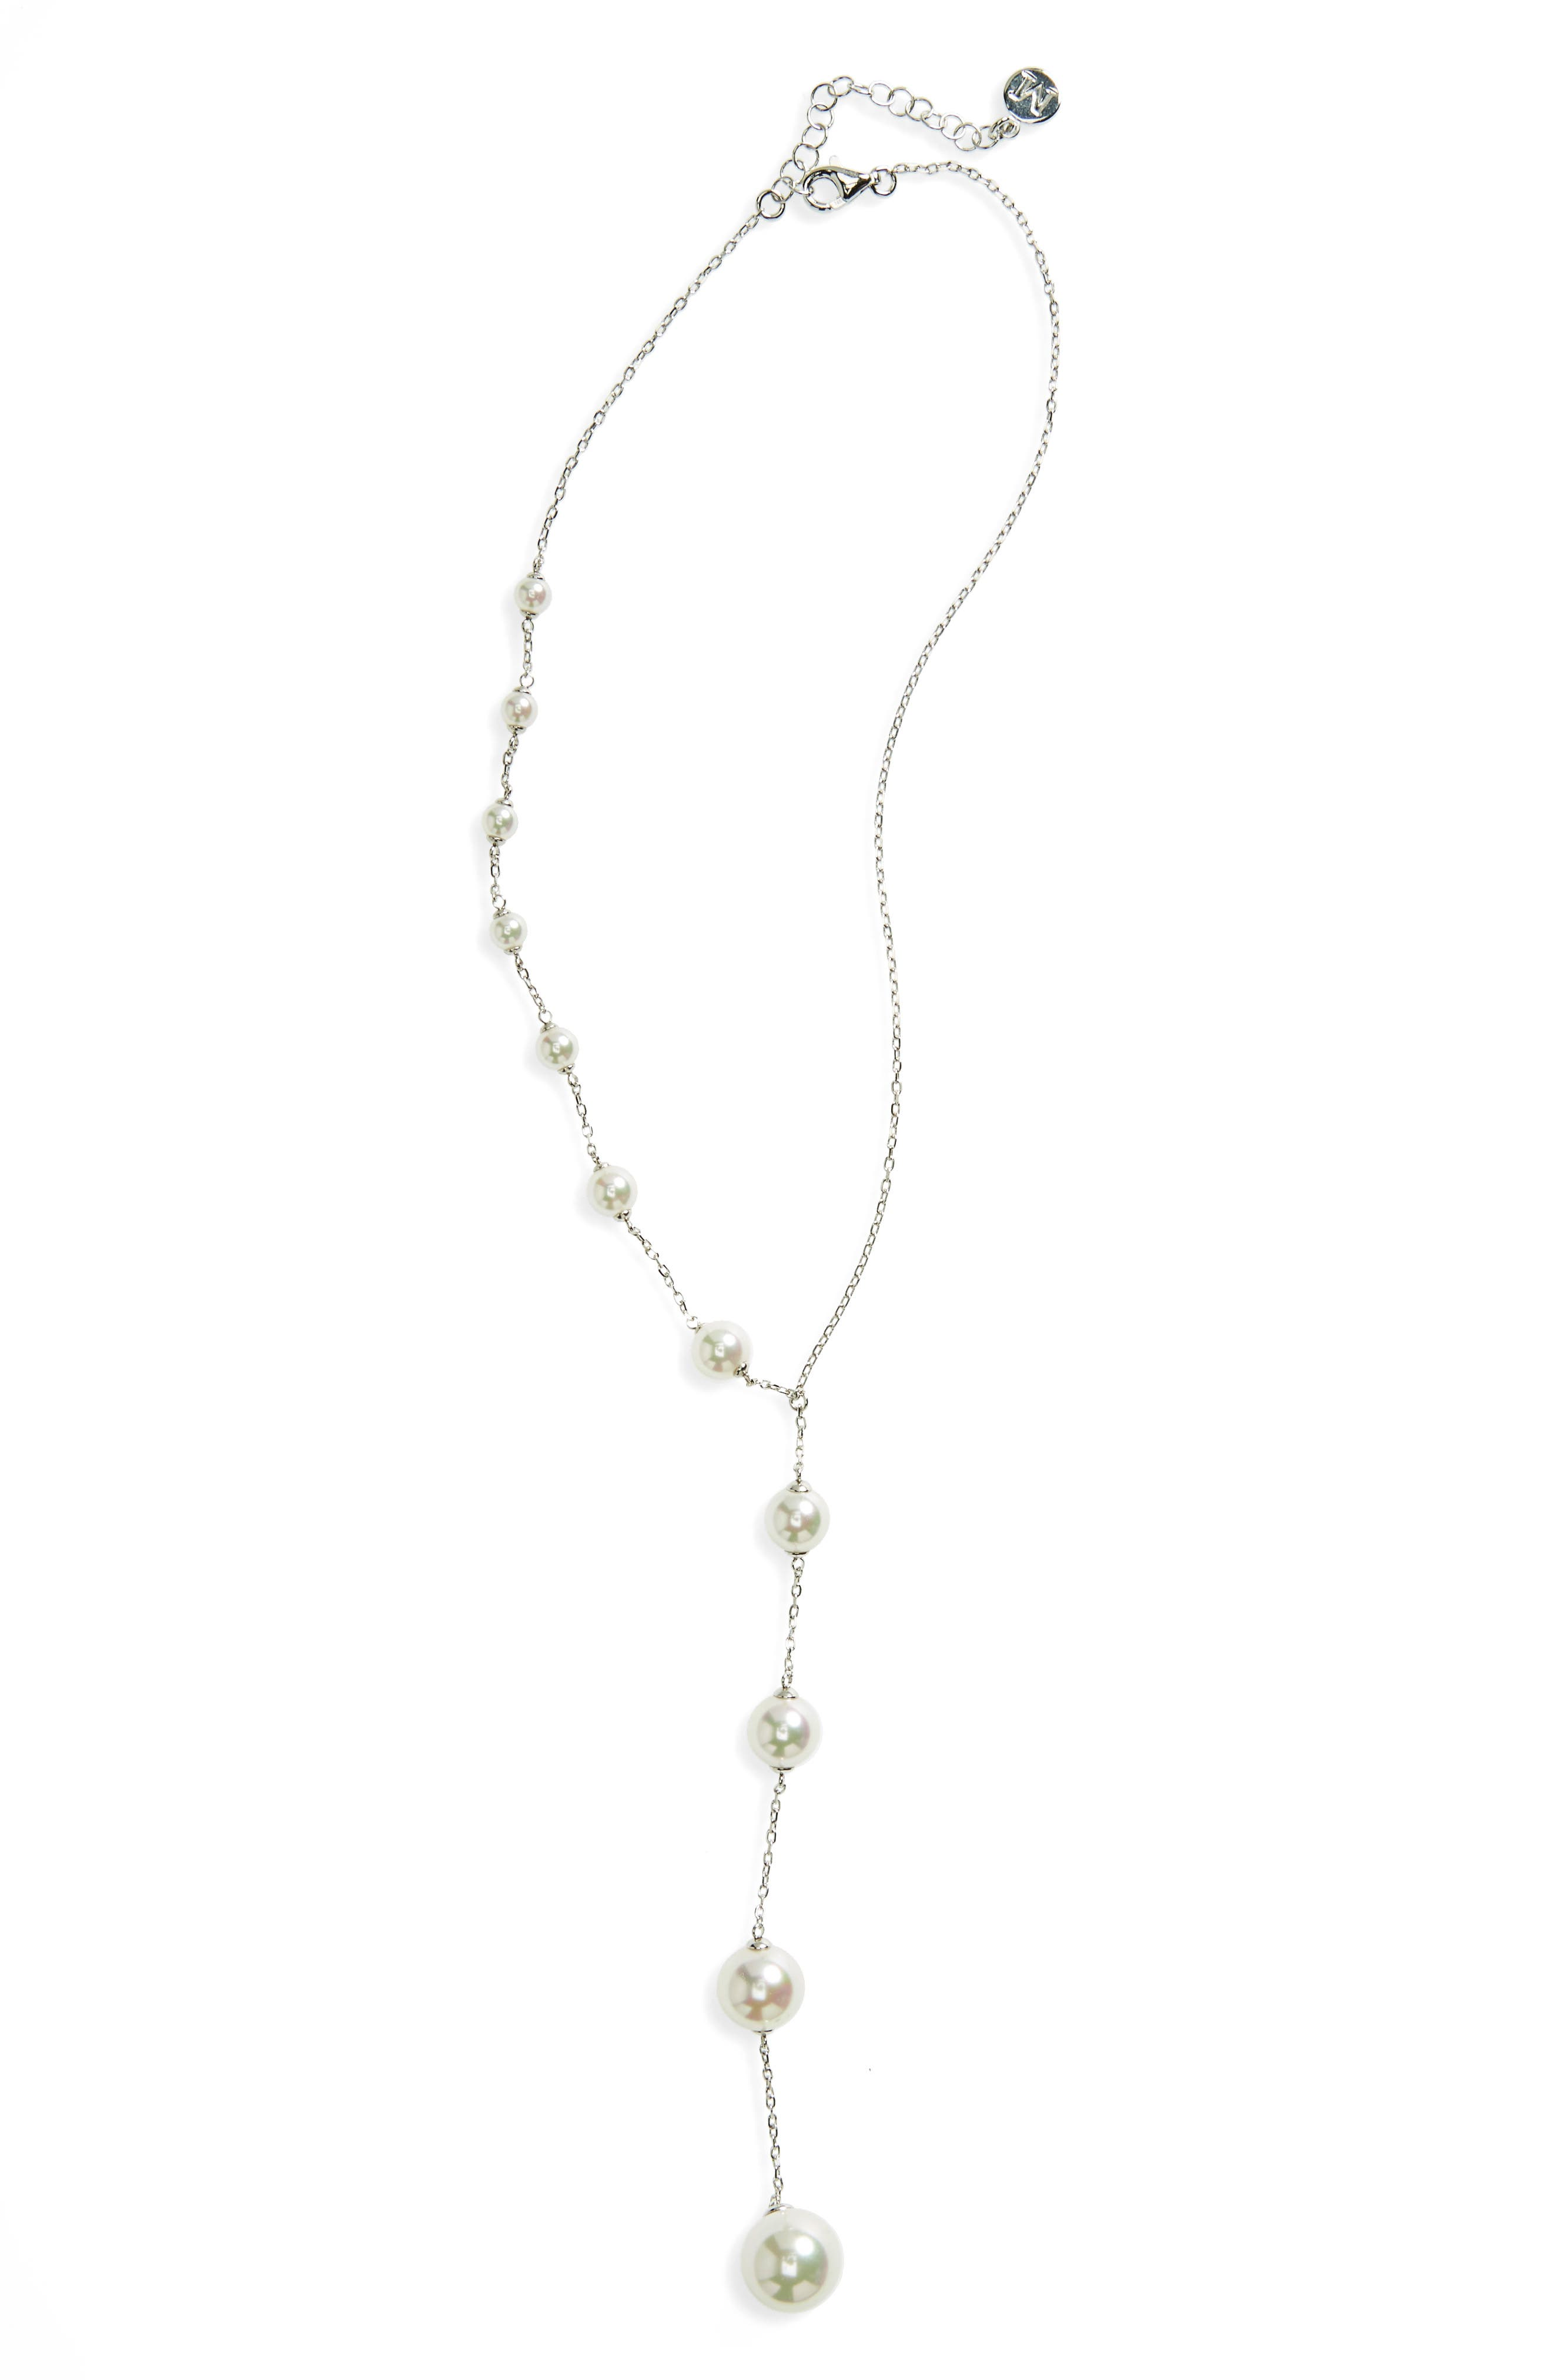 Illusion Simulated Pearl Y-Necklace,                             Main thumbnail 1, color,                             040